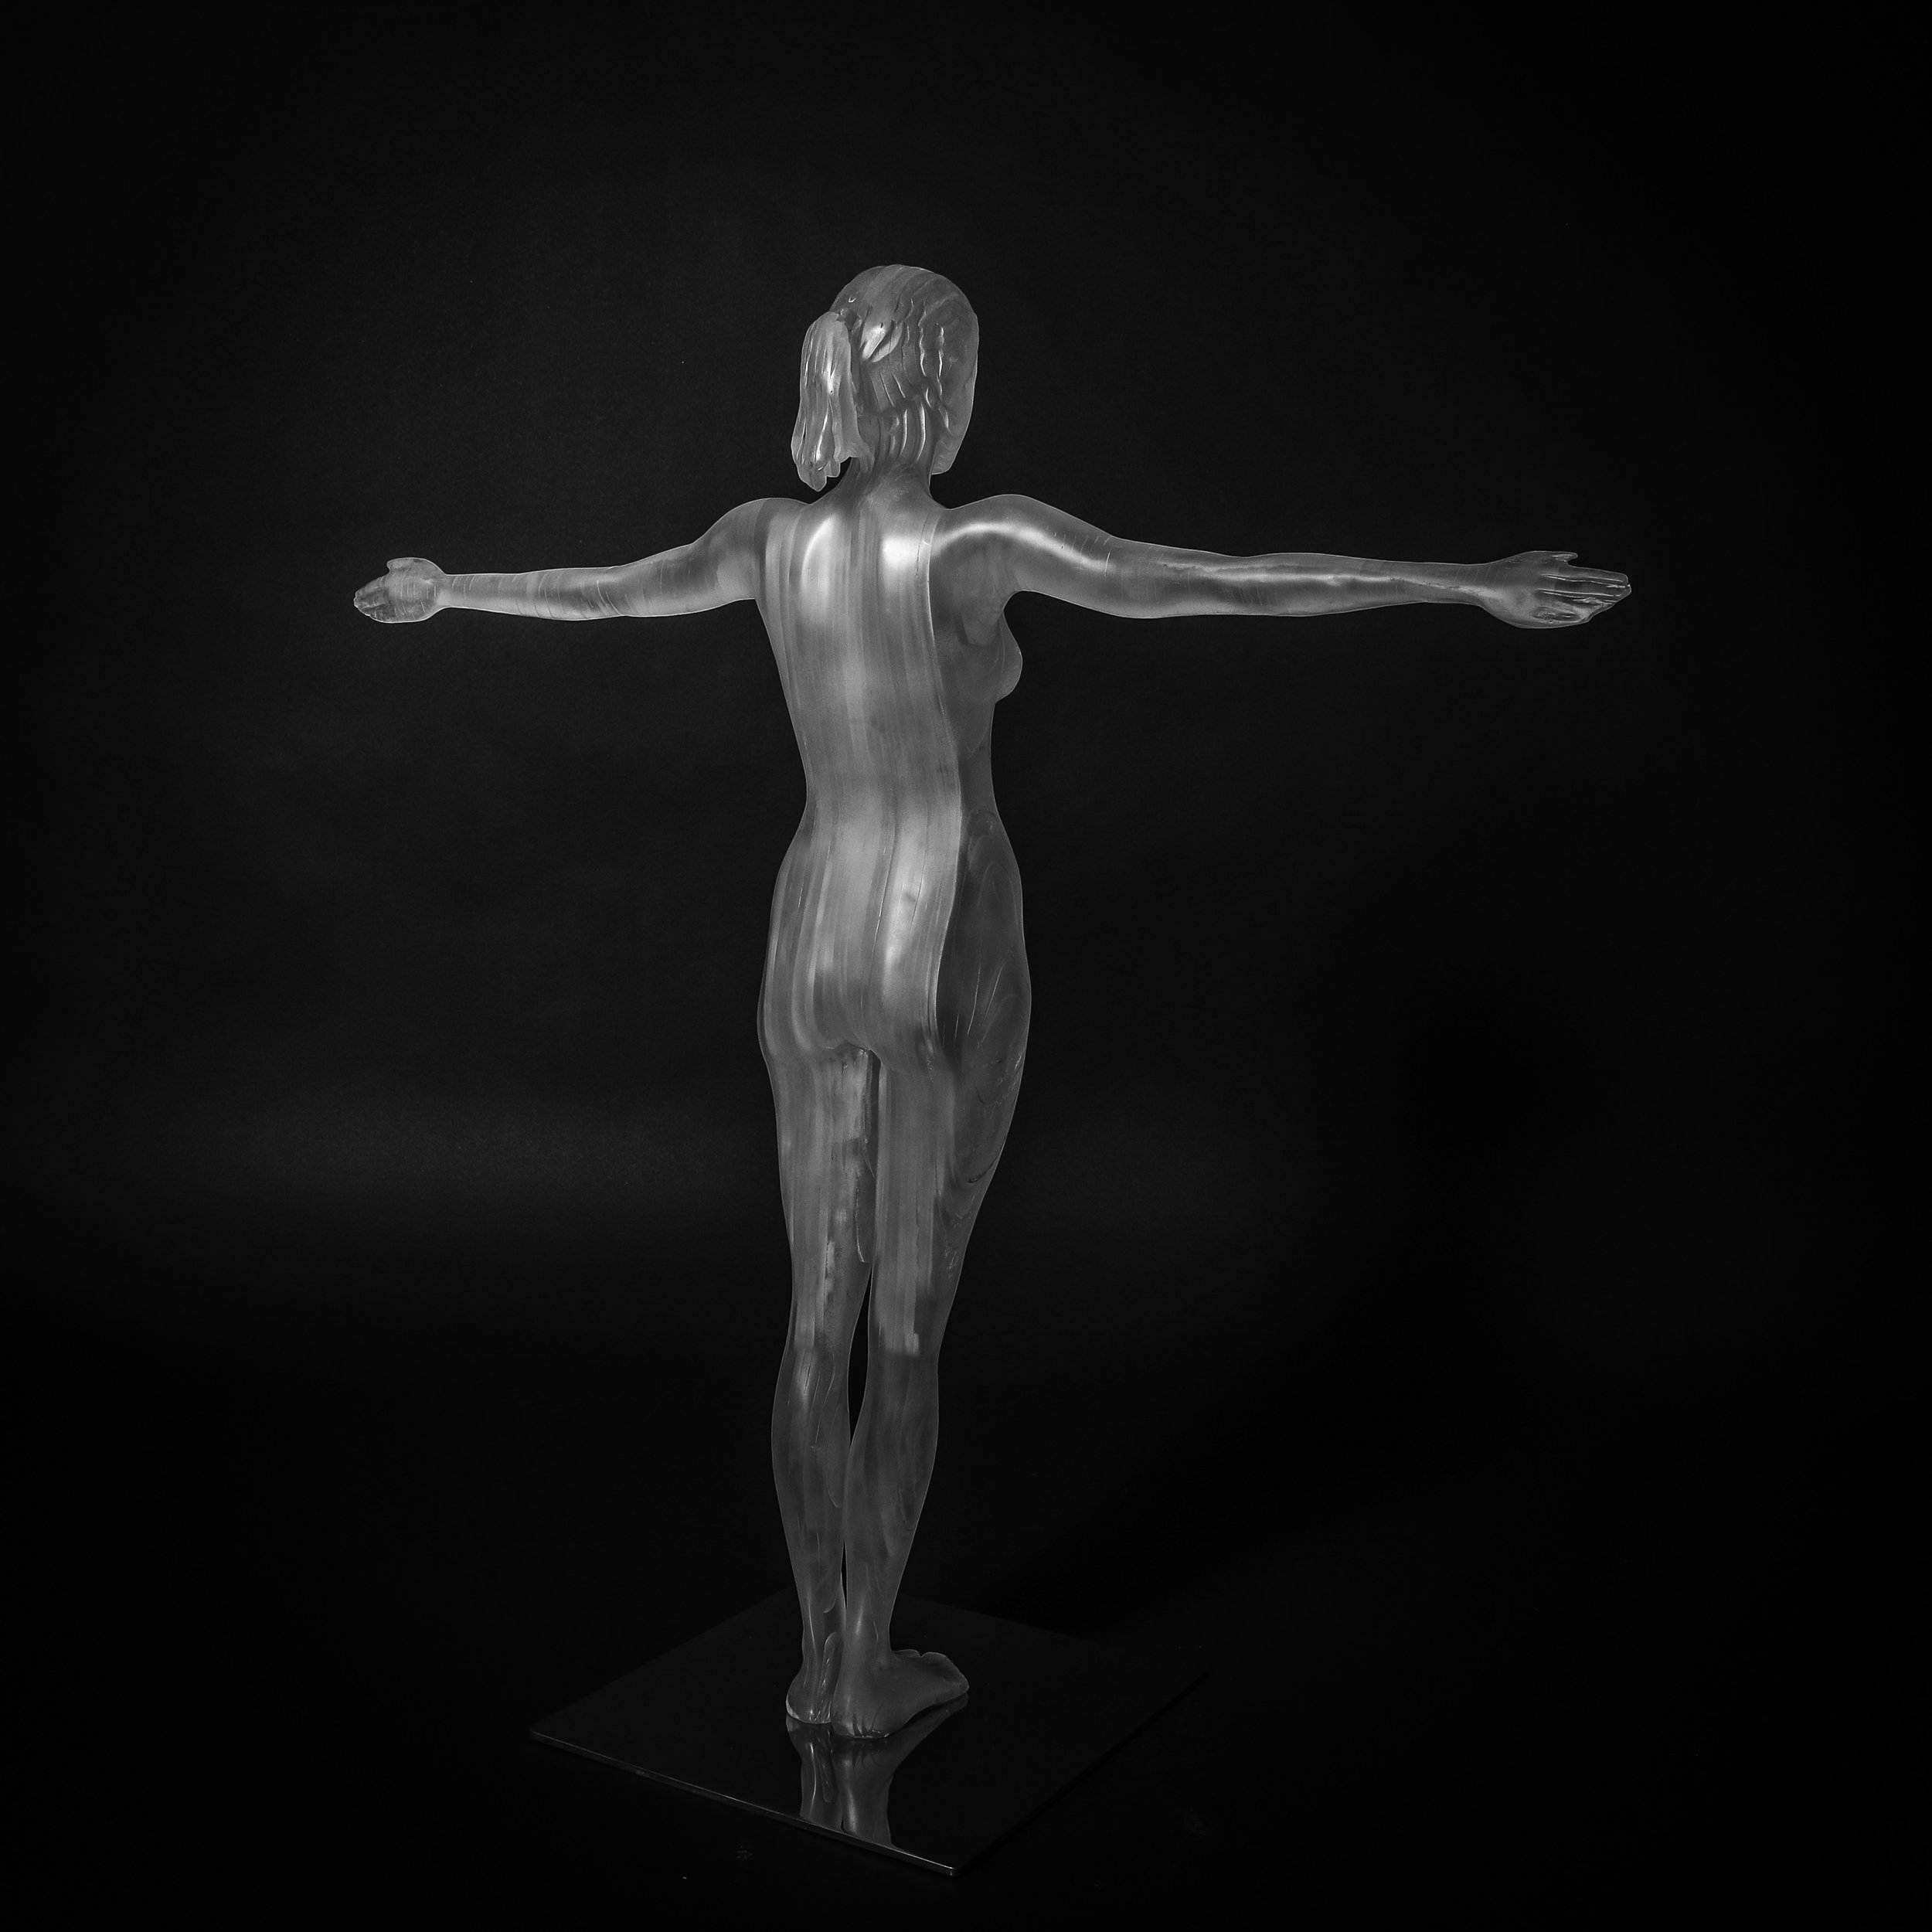 2017 Vitruvian Woman. 82cm x 76cm x 10cm extruded acrylic on stainless steel base (2).jpg